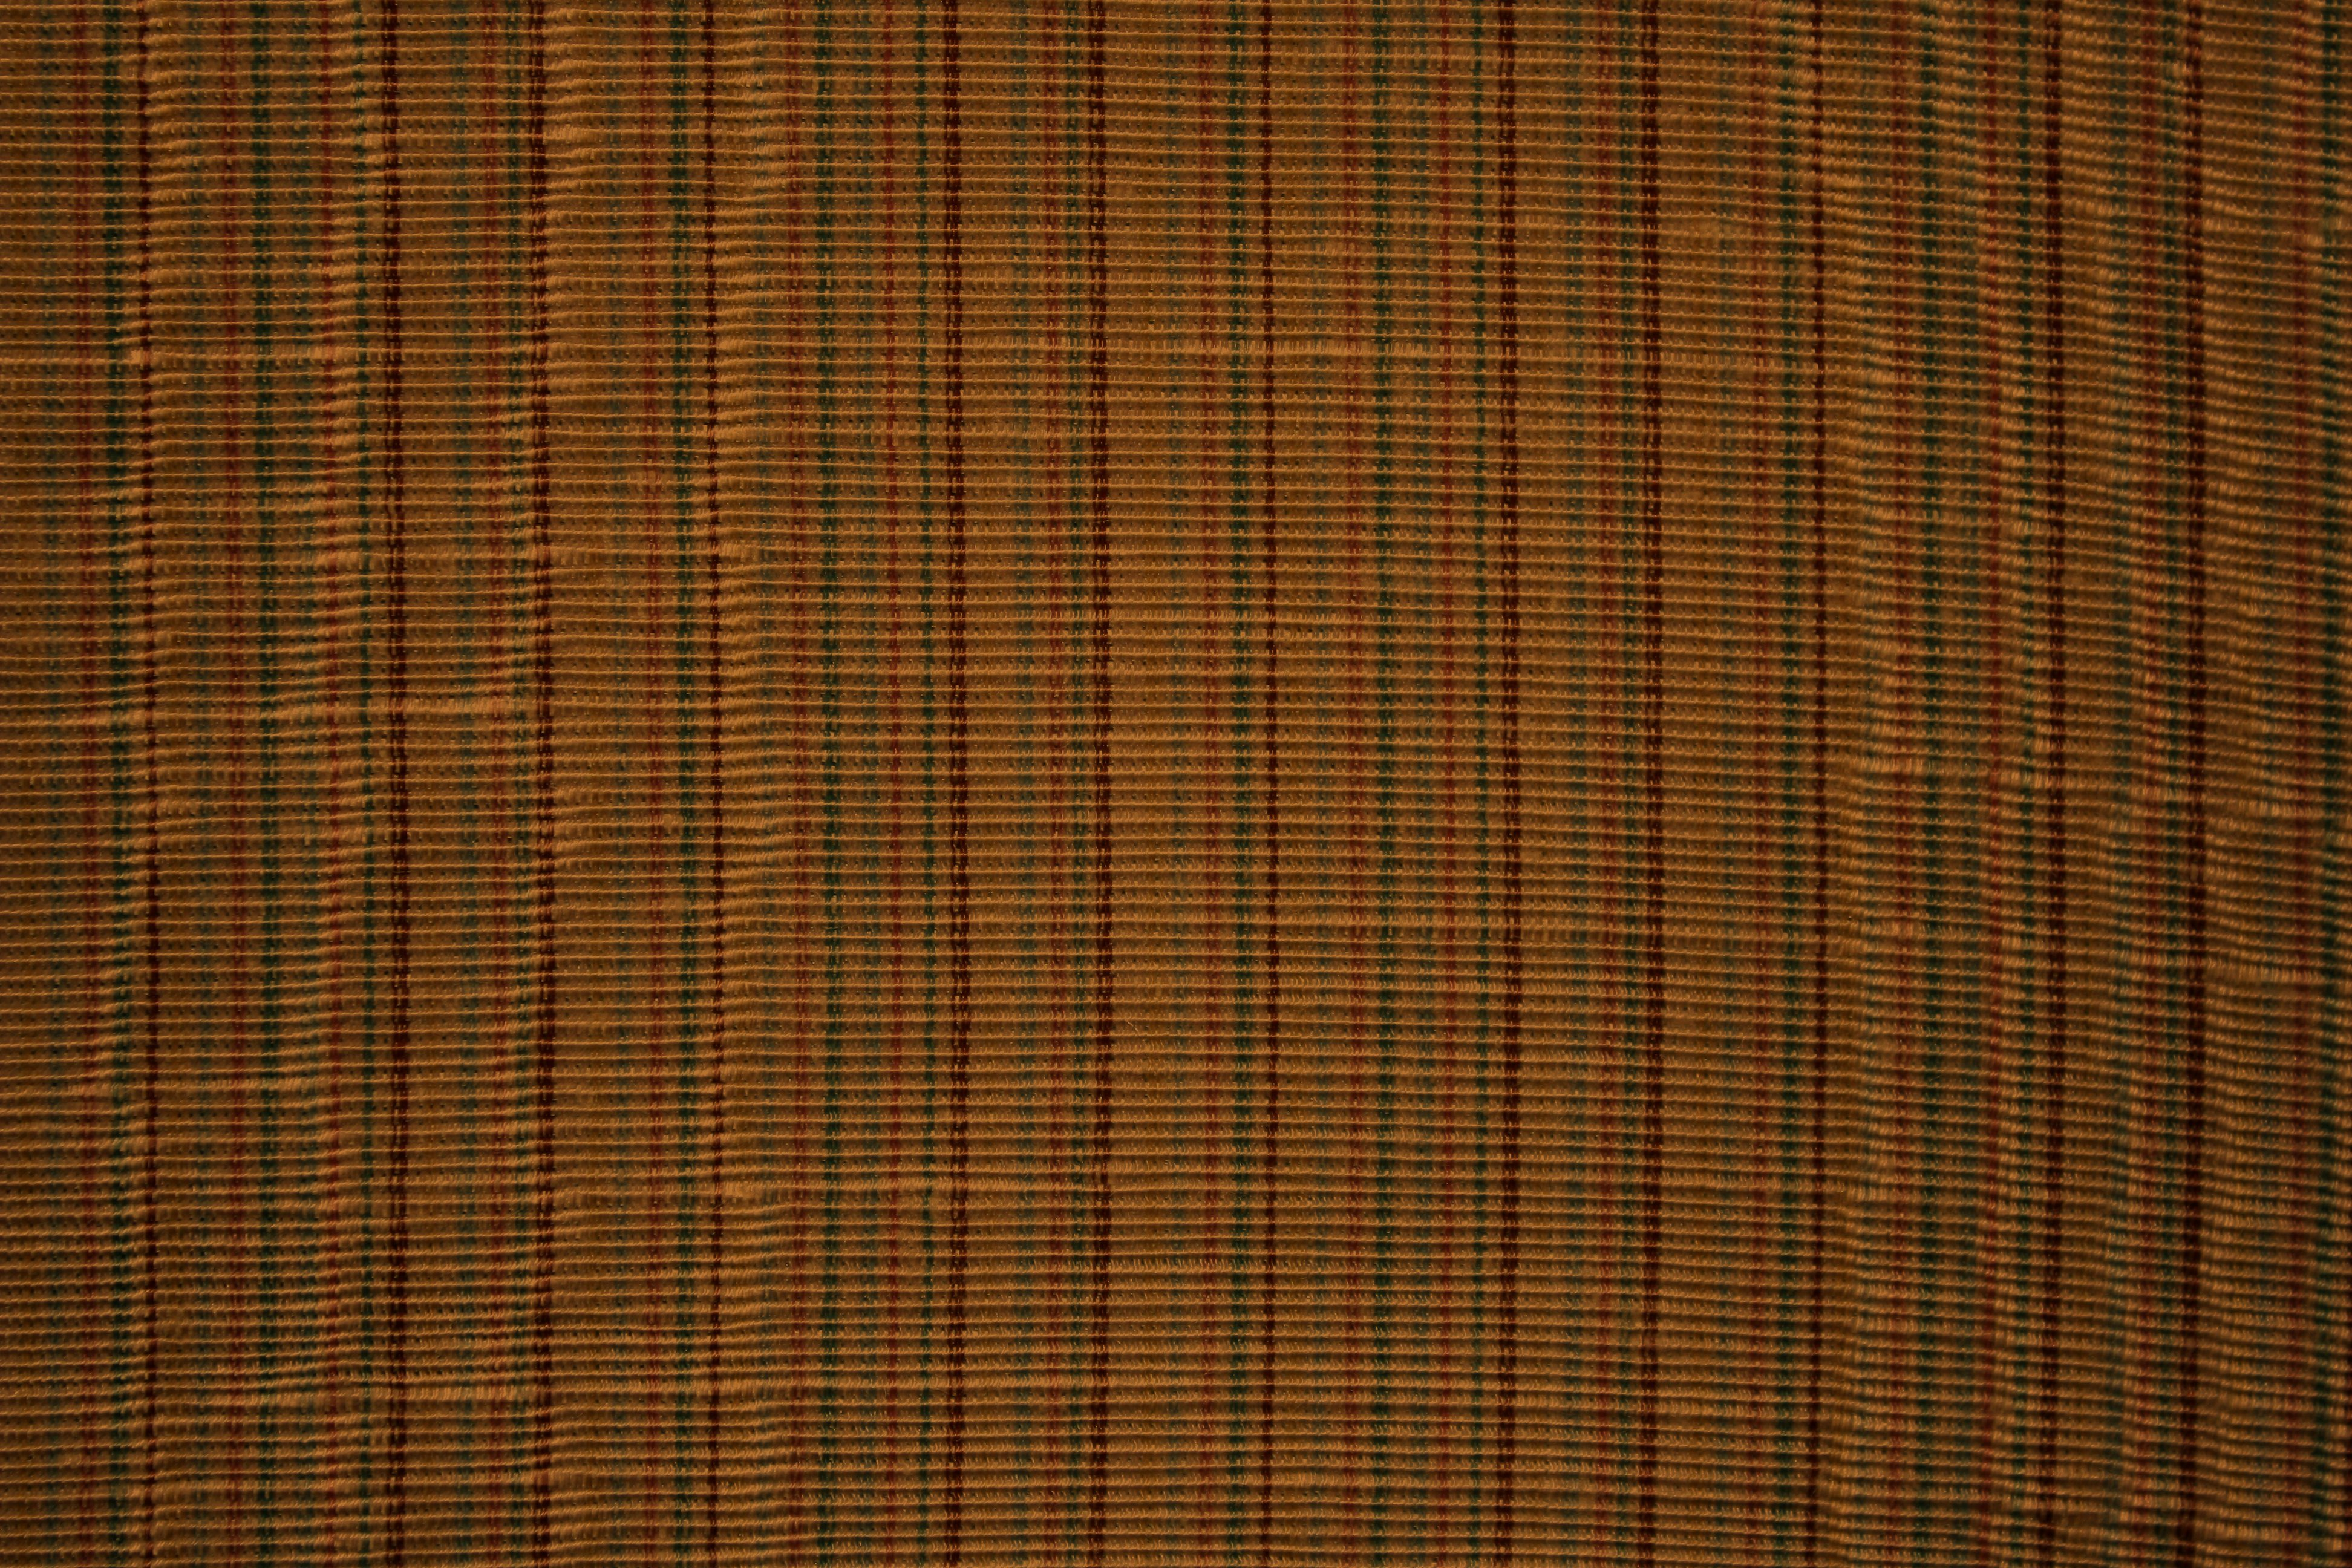 Rust Brown Upholstery Fabric Texture with Stripes Picture | Free ...